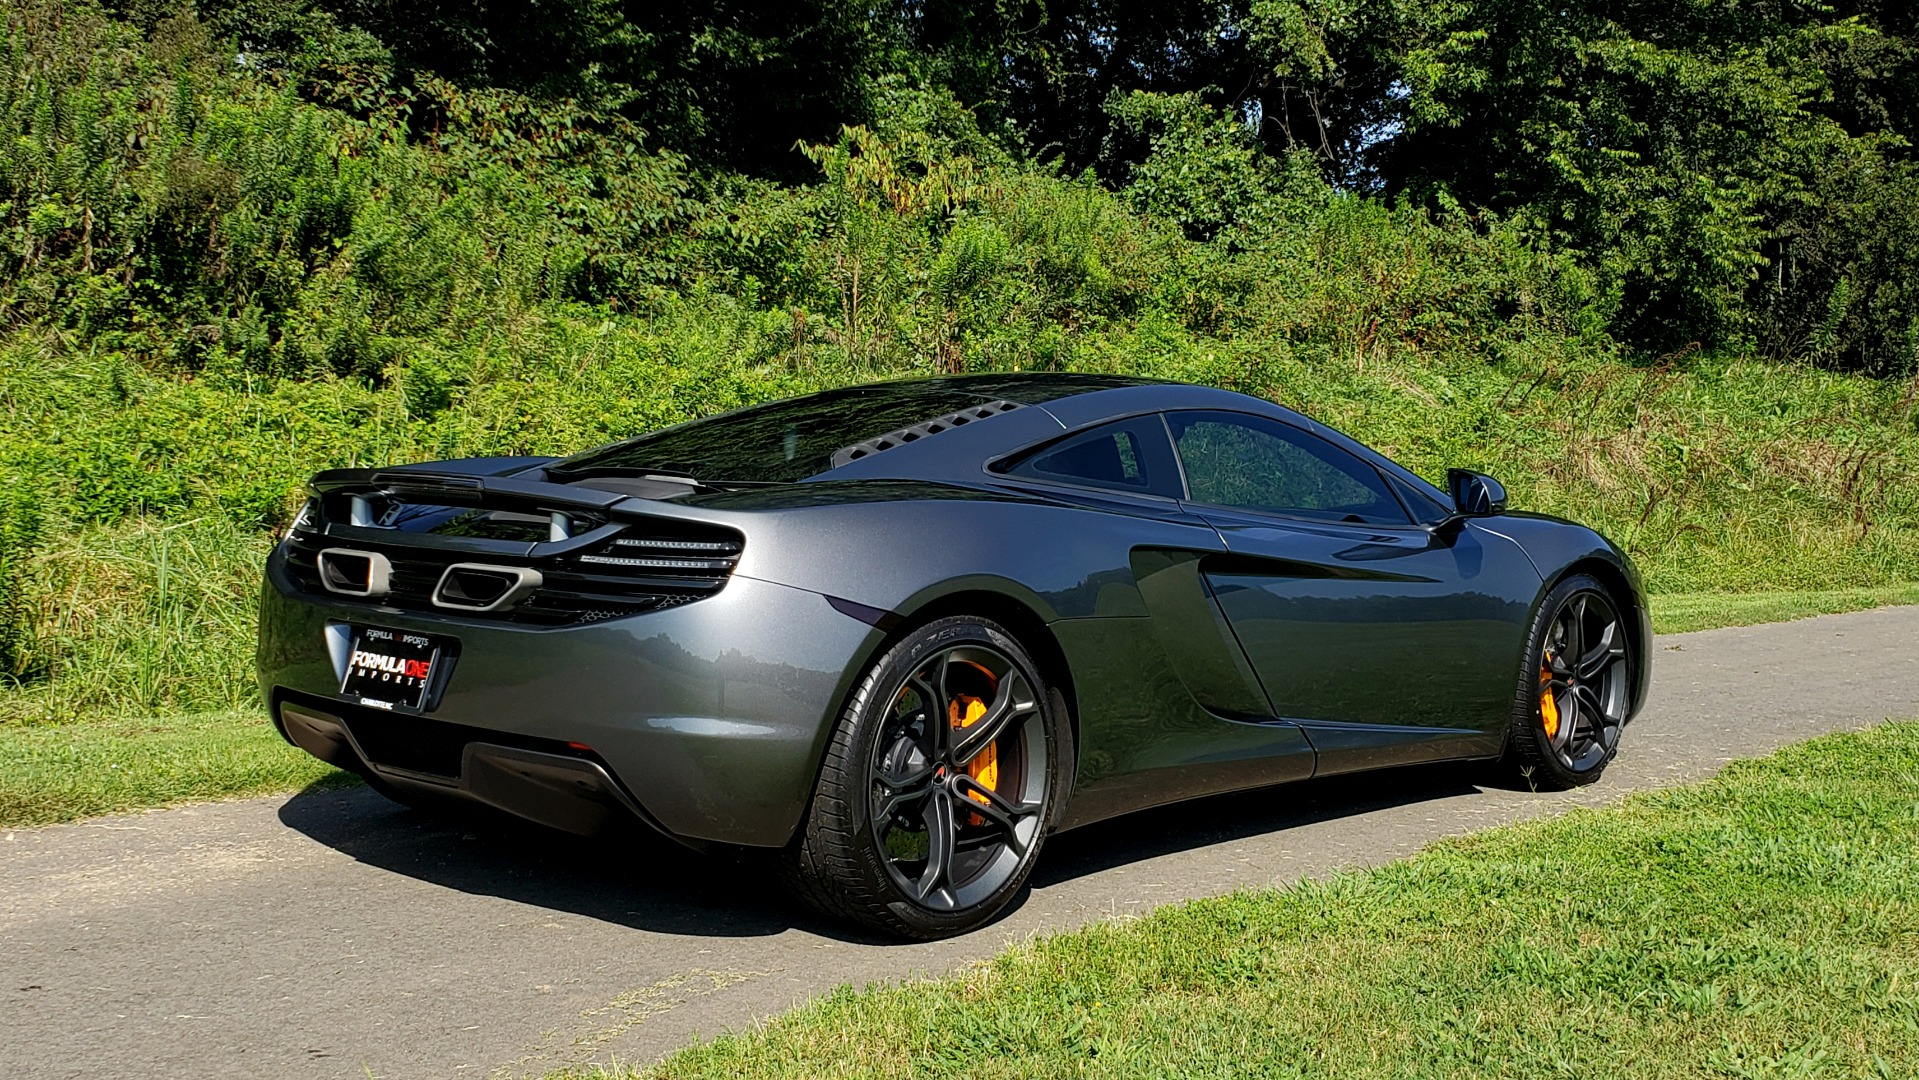 Used 2012 McLaren MP4-12C COUPE / 3.8 L V8 592HP / AUTO / NAV / CCB / LOW MILES for sale Sold at Formula Imports in Charlotte NC 28227 17